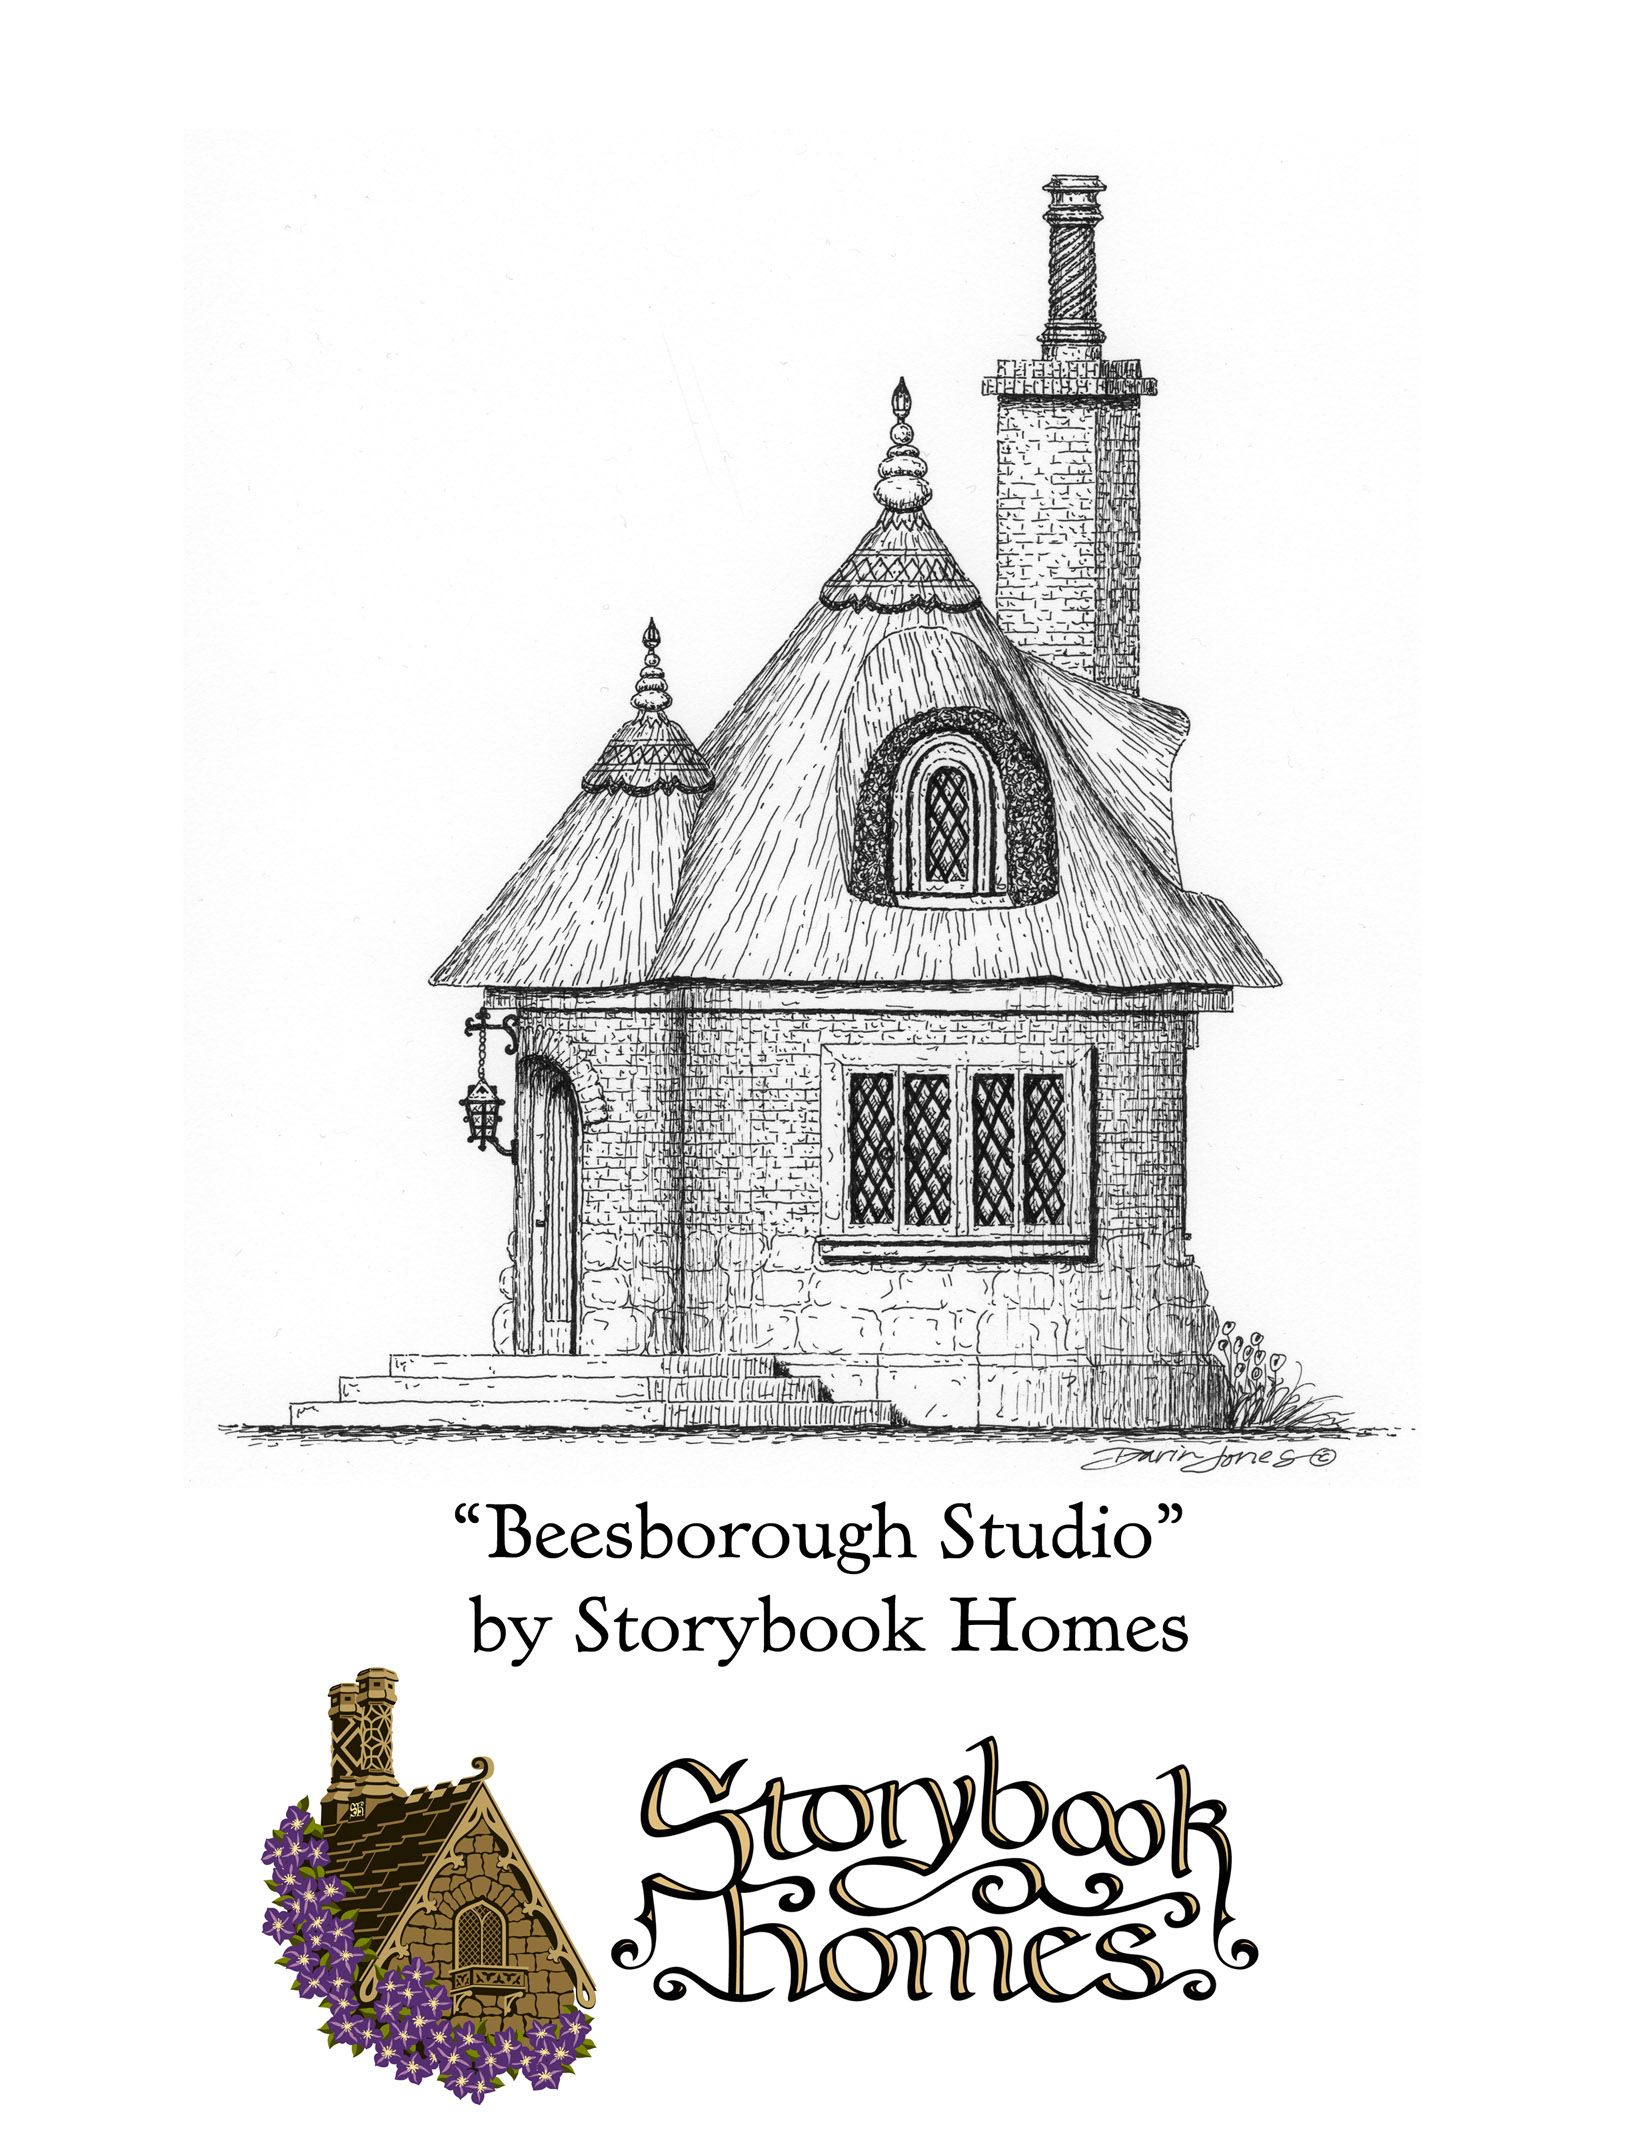 The Beesborough Studio Designed By Storybook Homes In The Truly